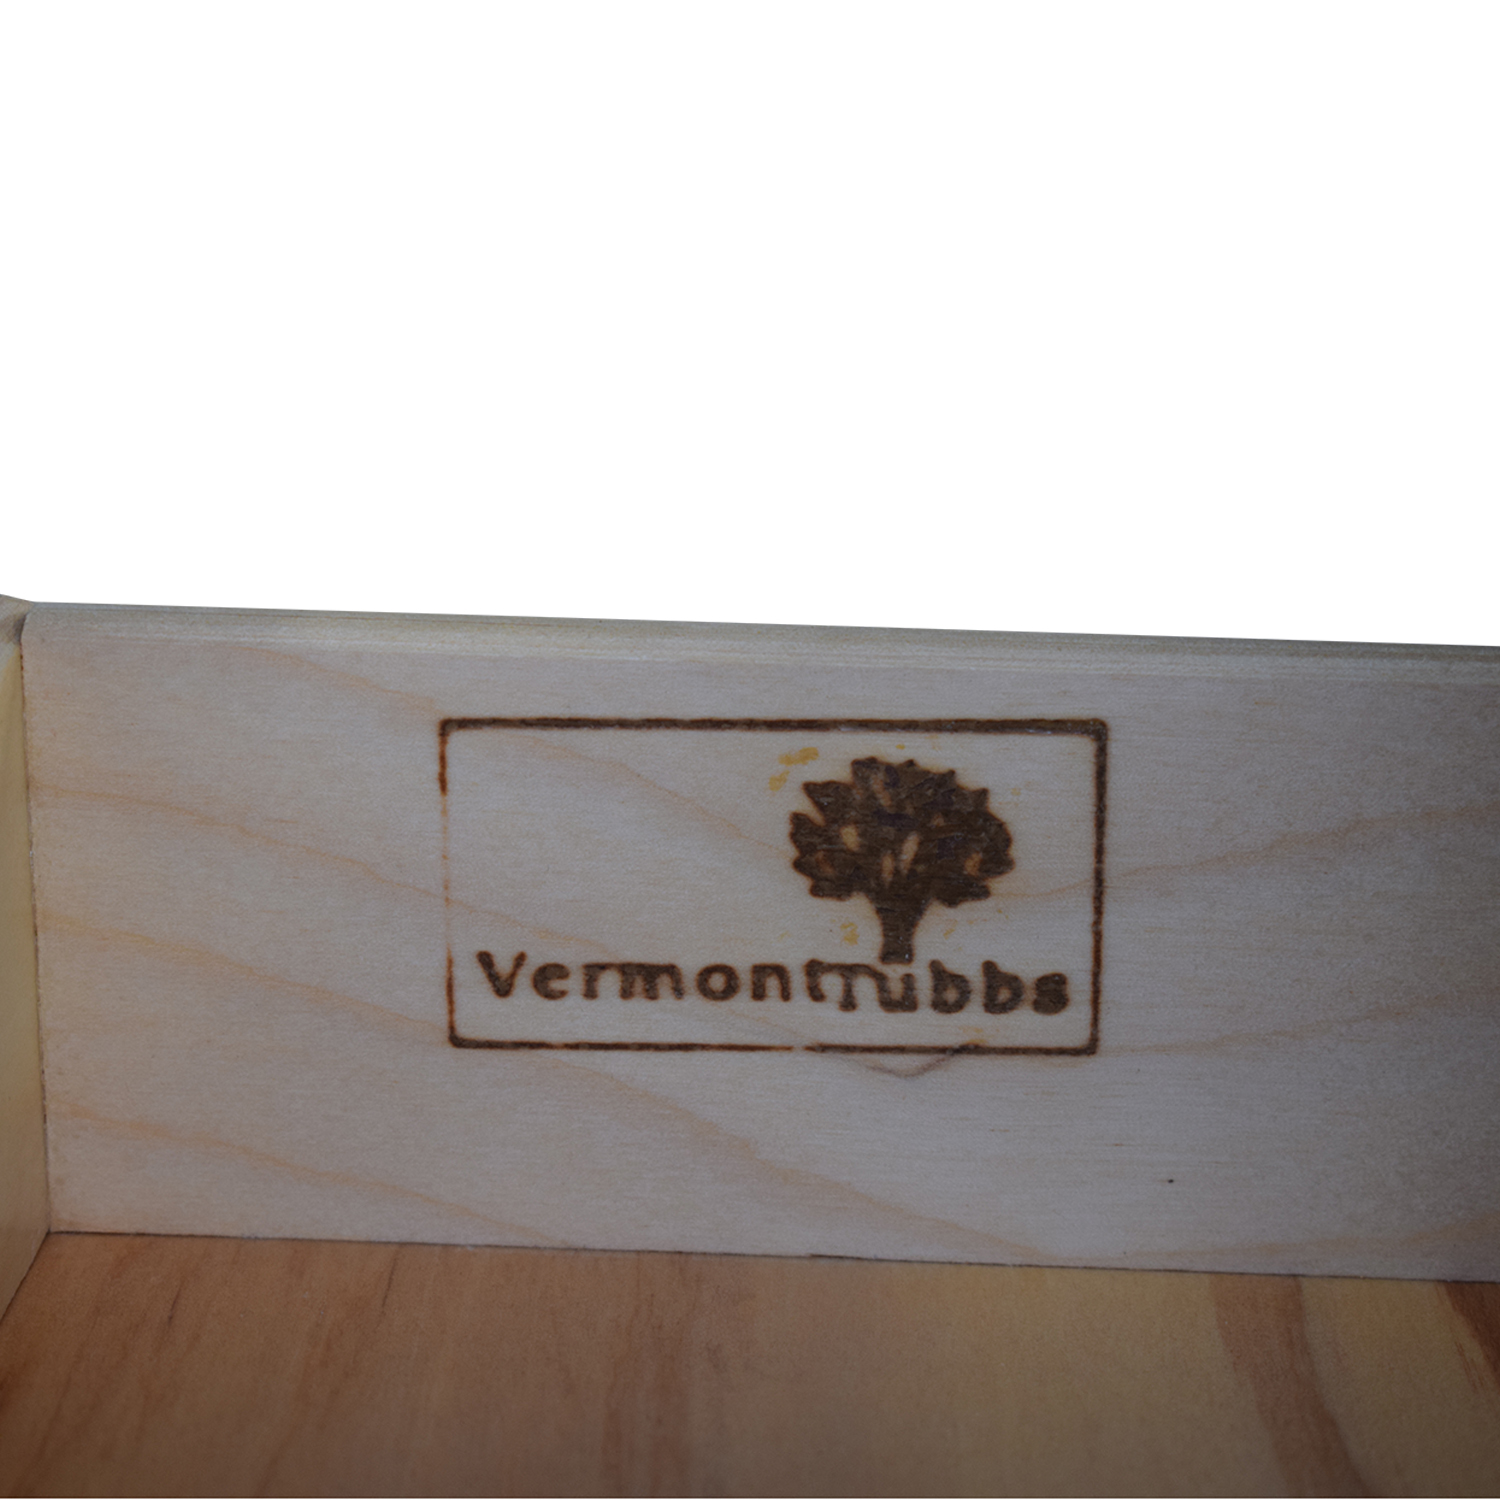 Vermont Tubbs Vermont Tubbs Single Drawer Nightstands nyc